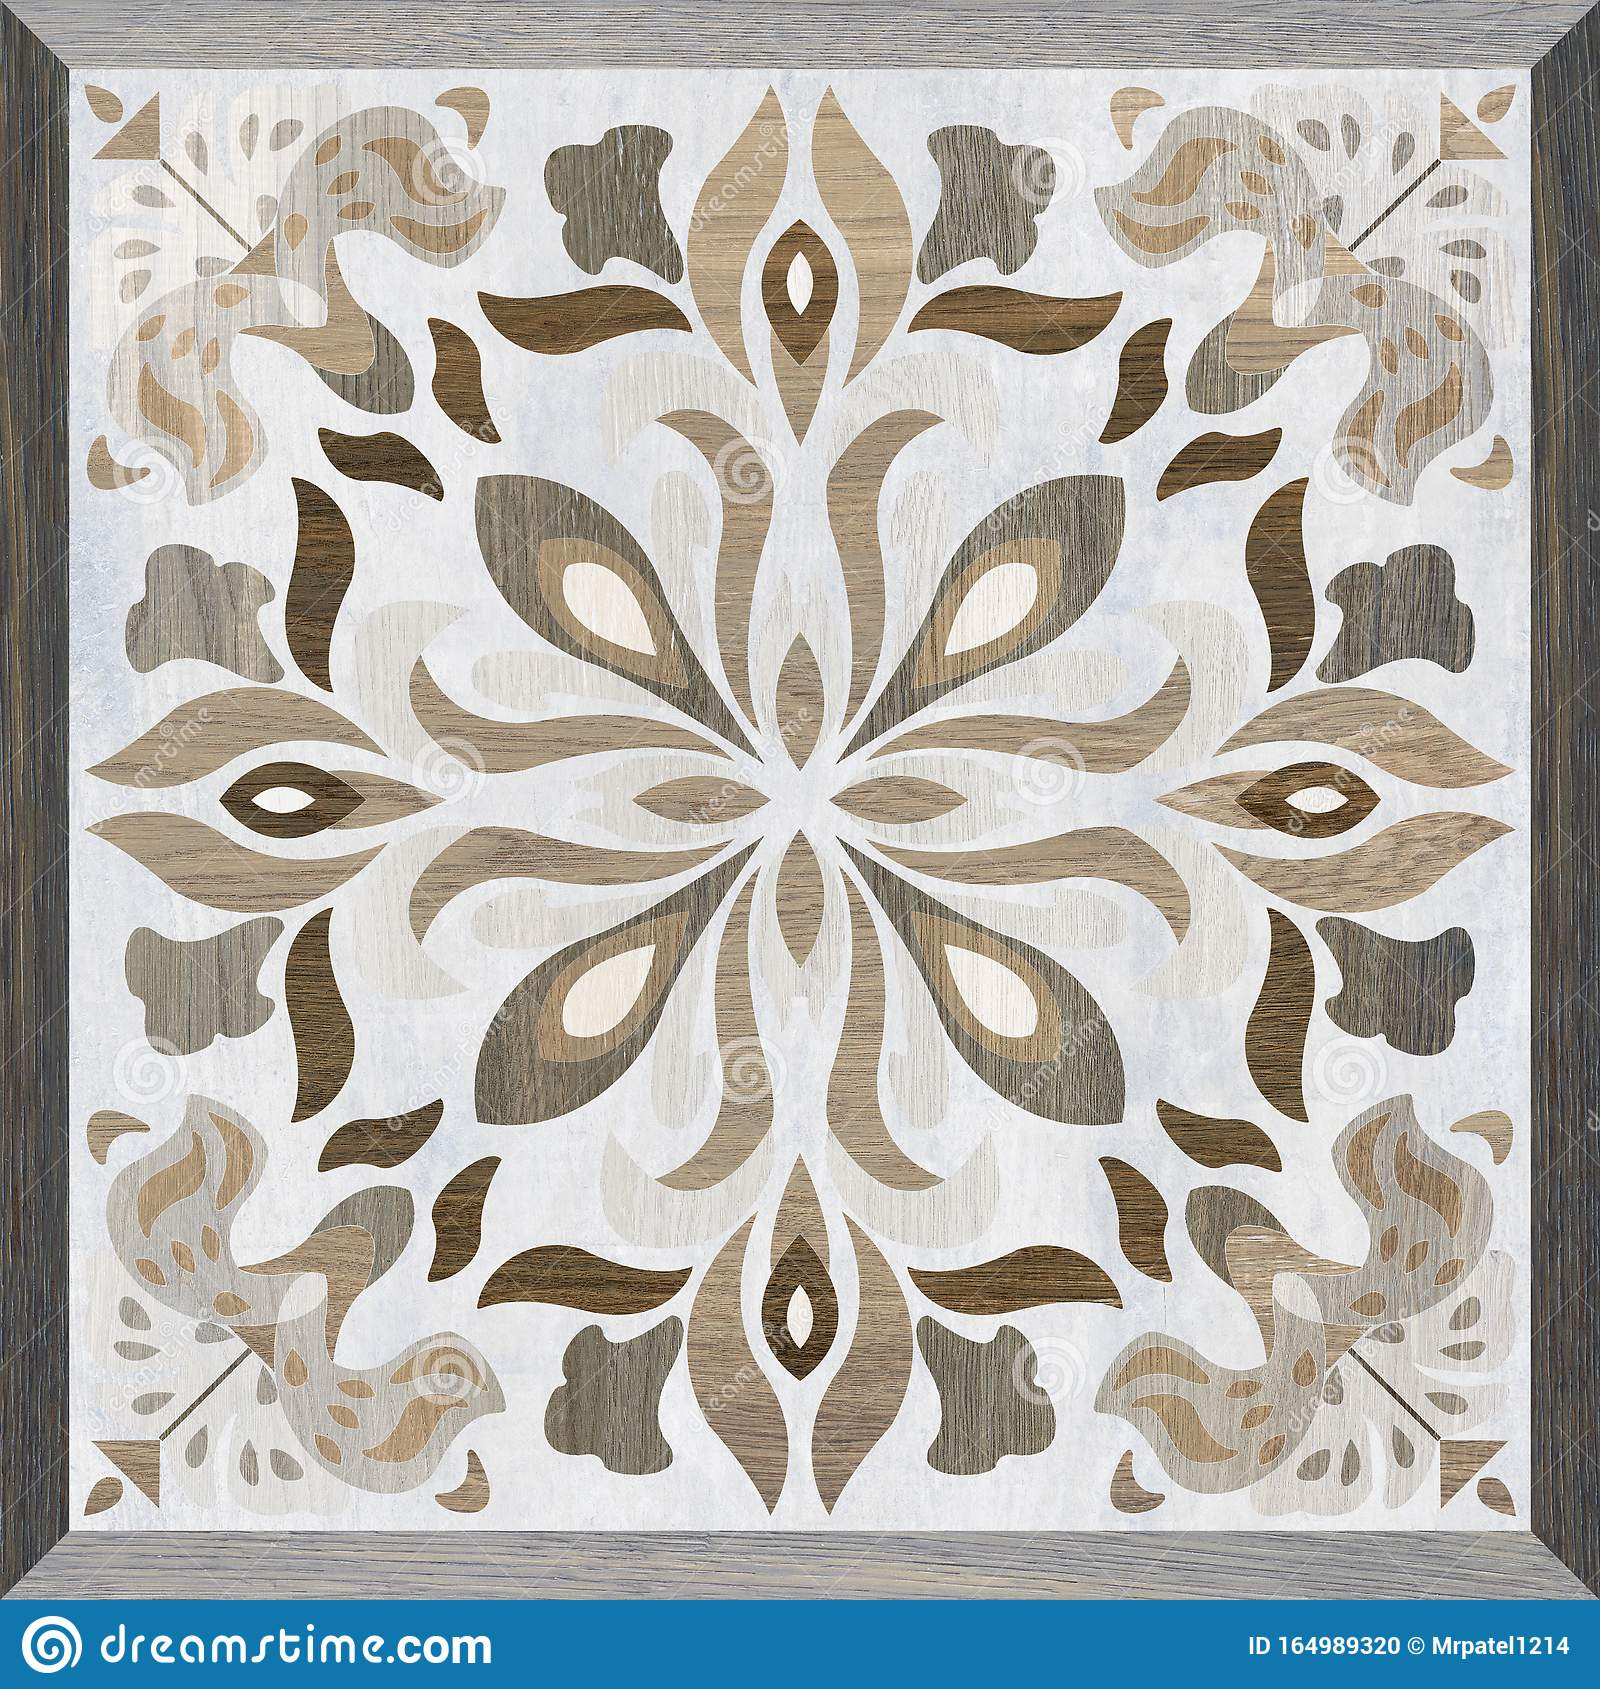 https www dreamstime com abstract texture design pattern wall tile floor tile marble tile mosaic geometric wood carving pattern tiles wooden image164989320